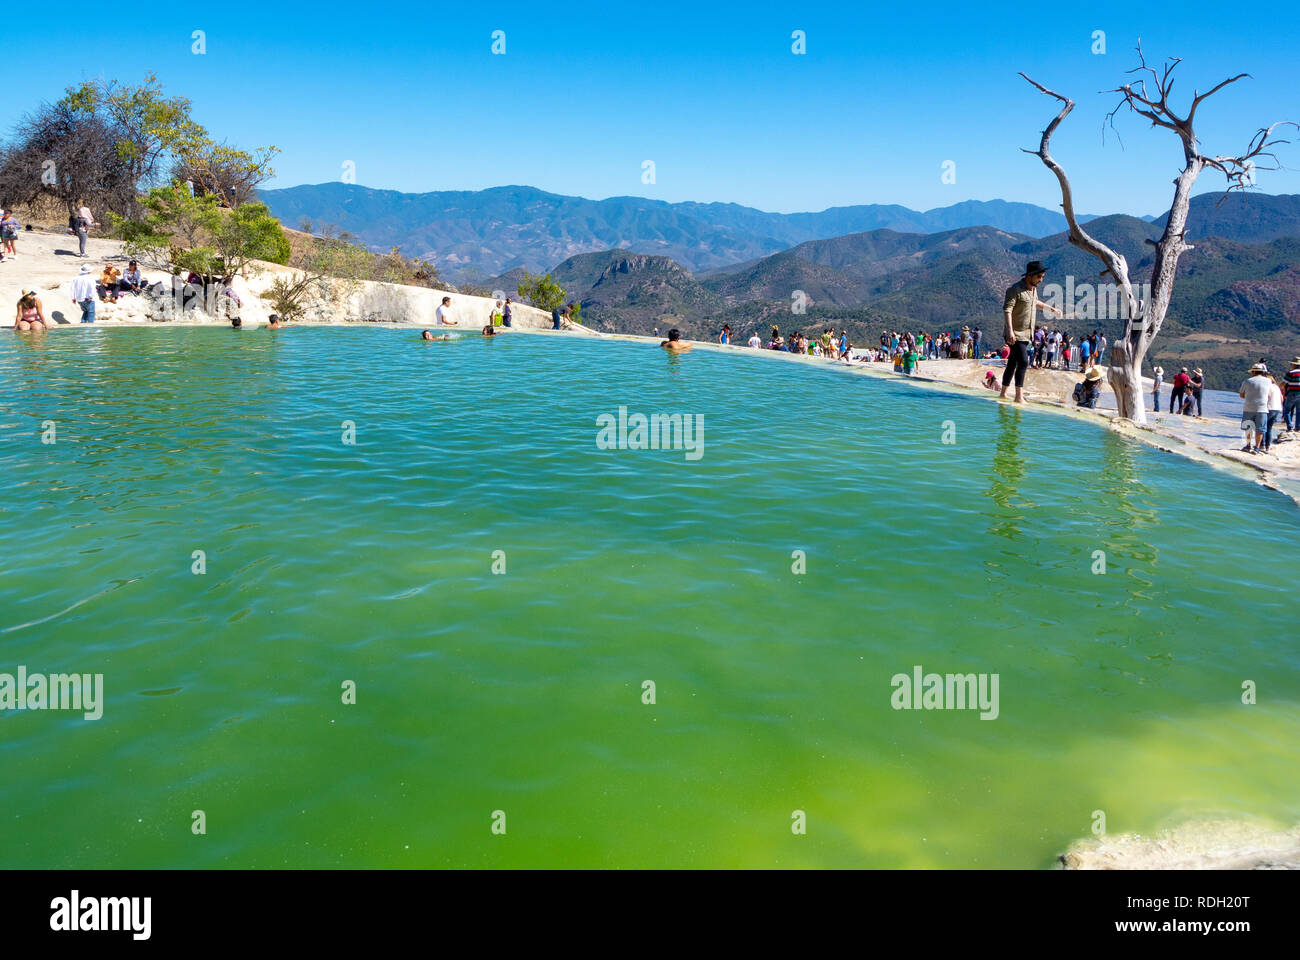 A lake done by , Petrified waterfall, Hierve el Agua, Oaxaca, Mexico Stock Photo